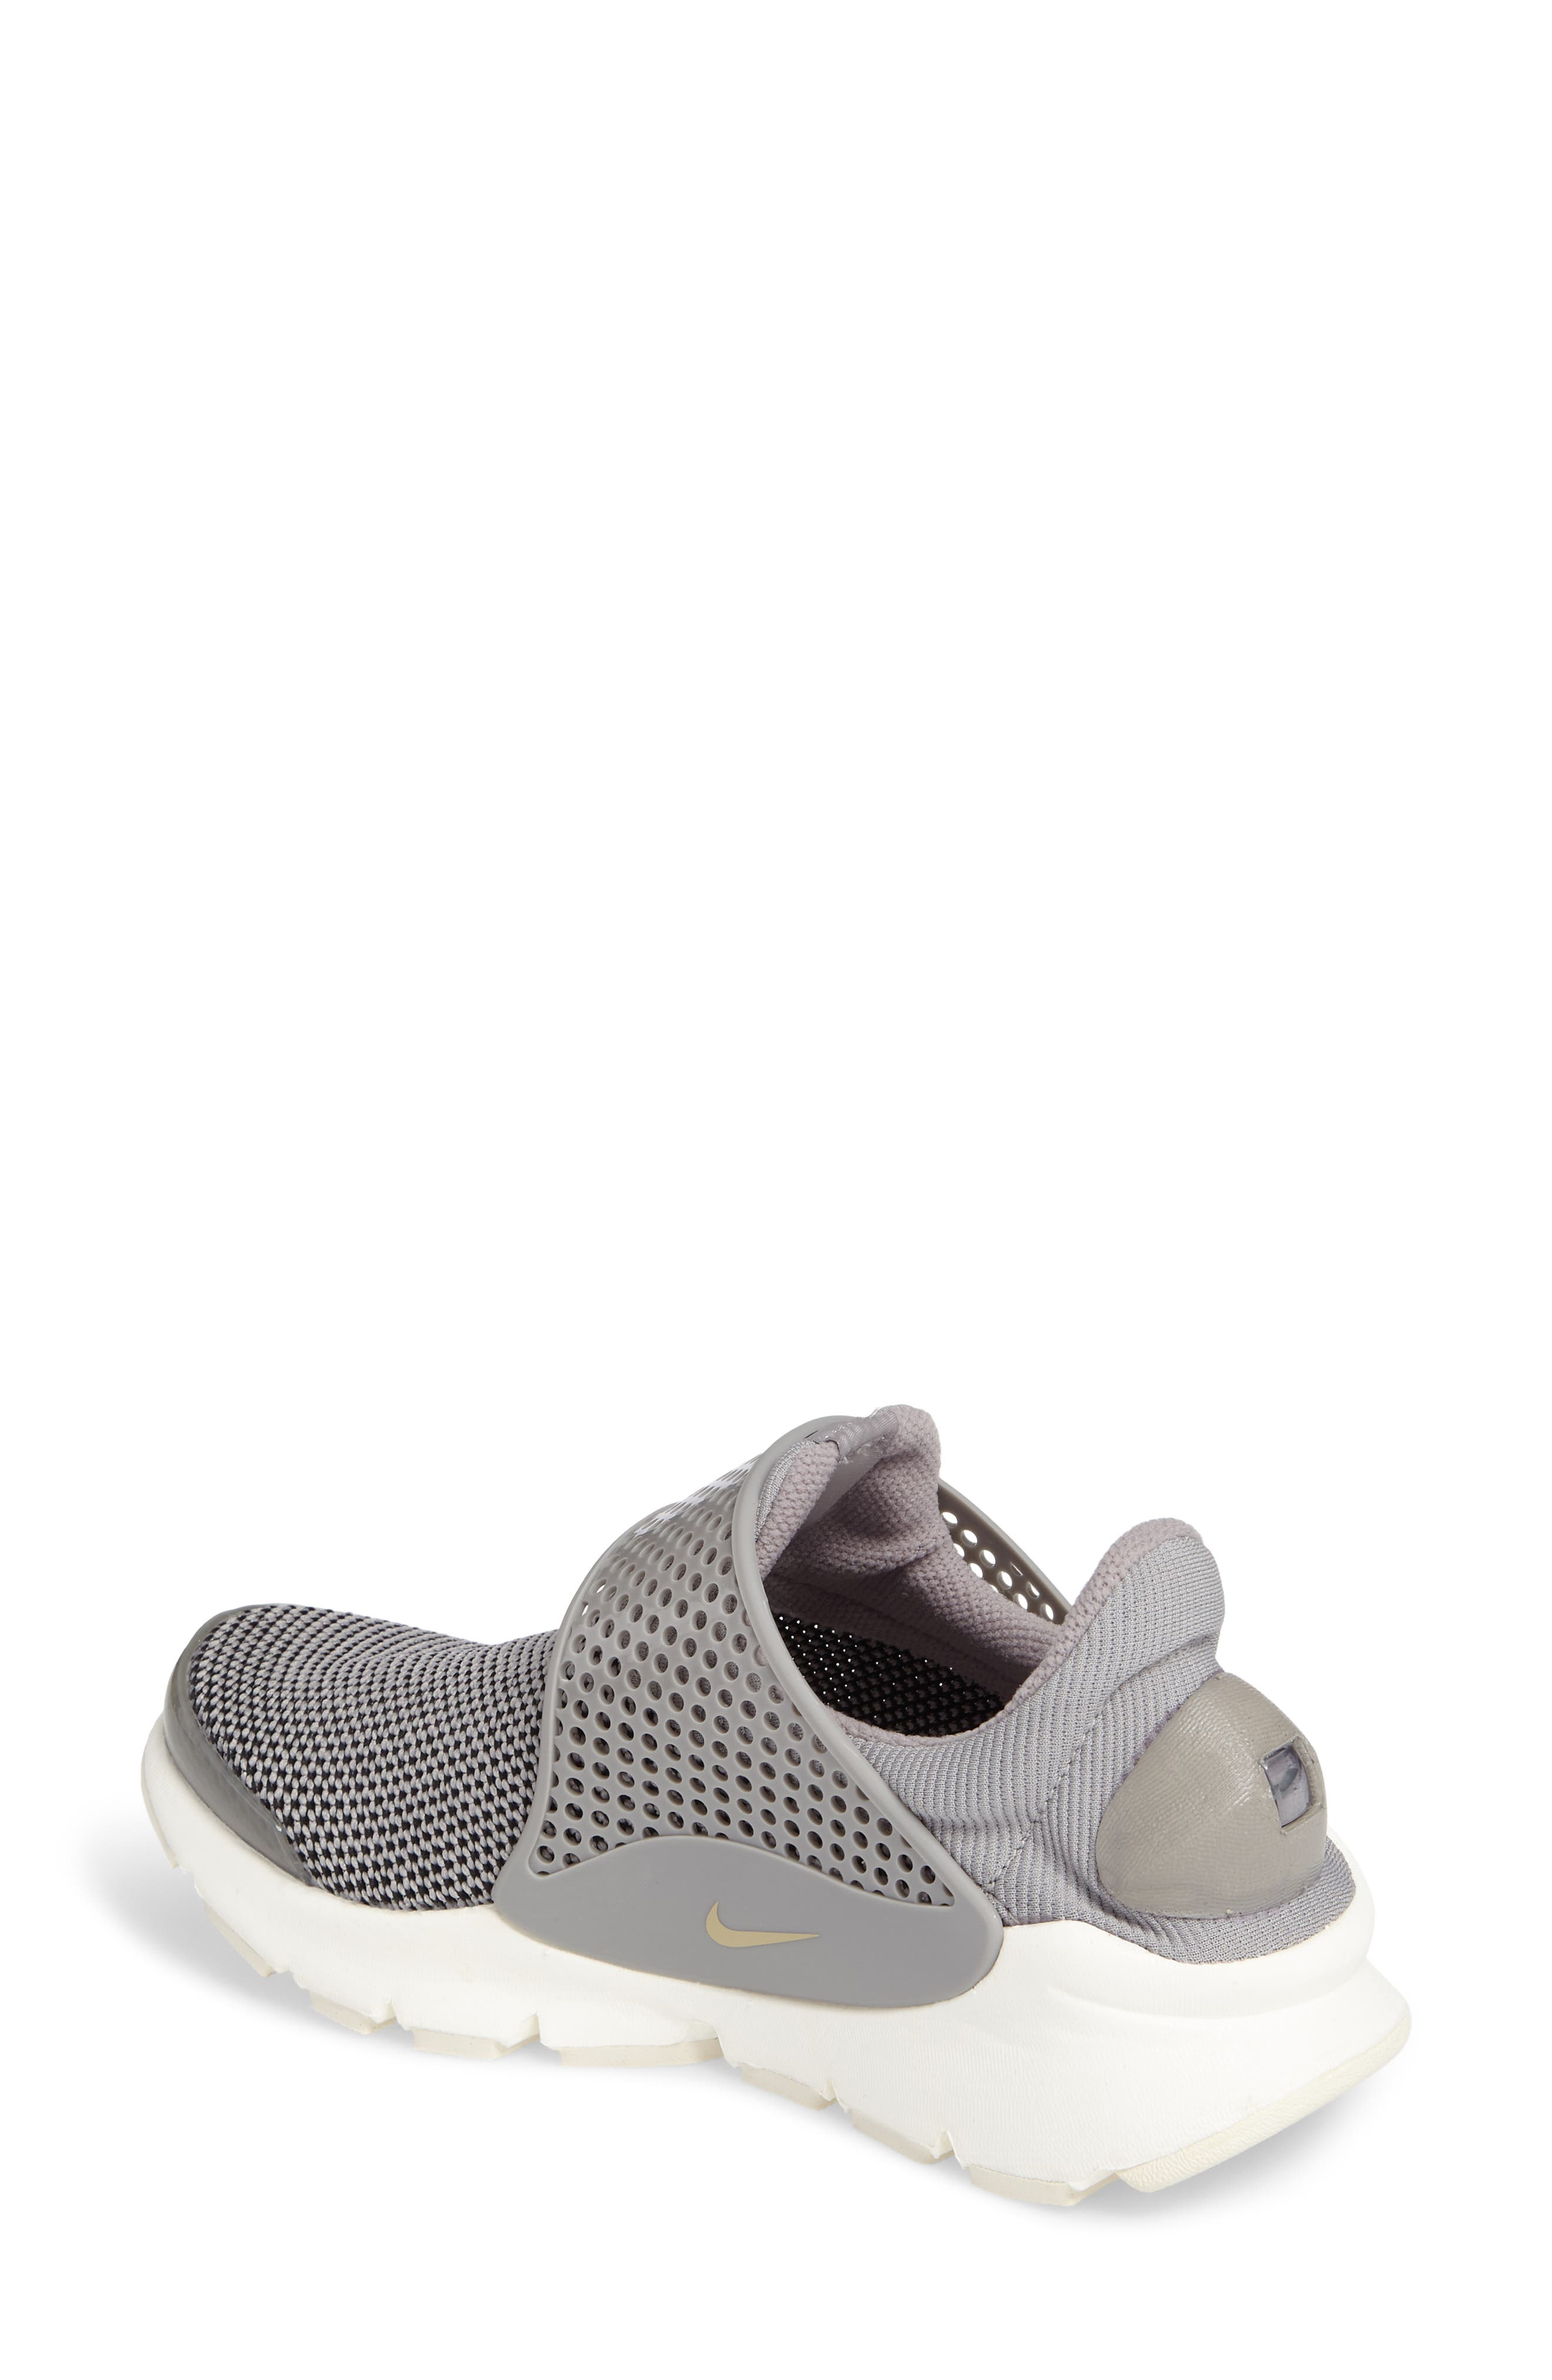 Sock Dart Sneaker,                             Alternate thumbnail 2, color,                             250